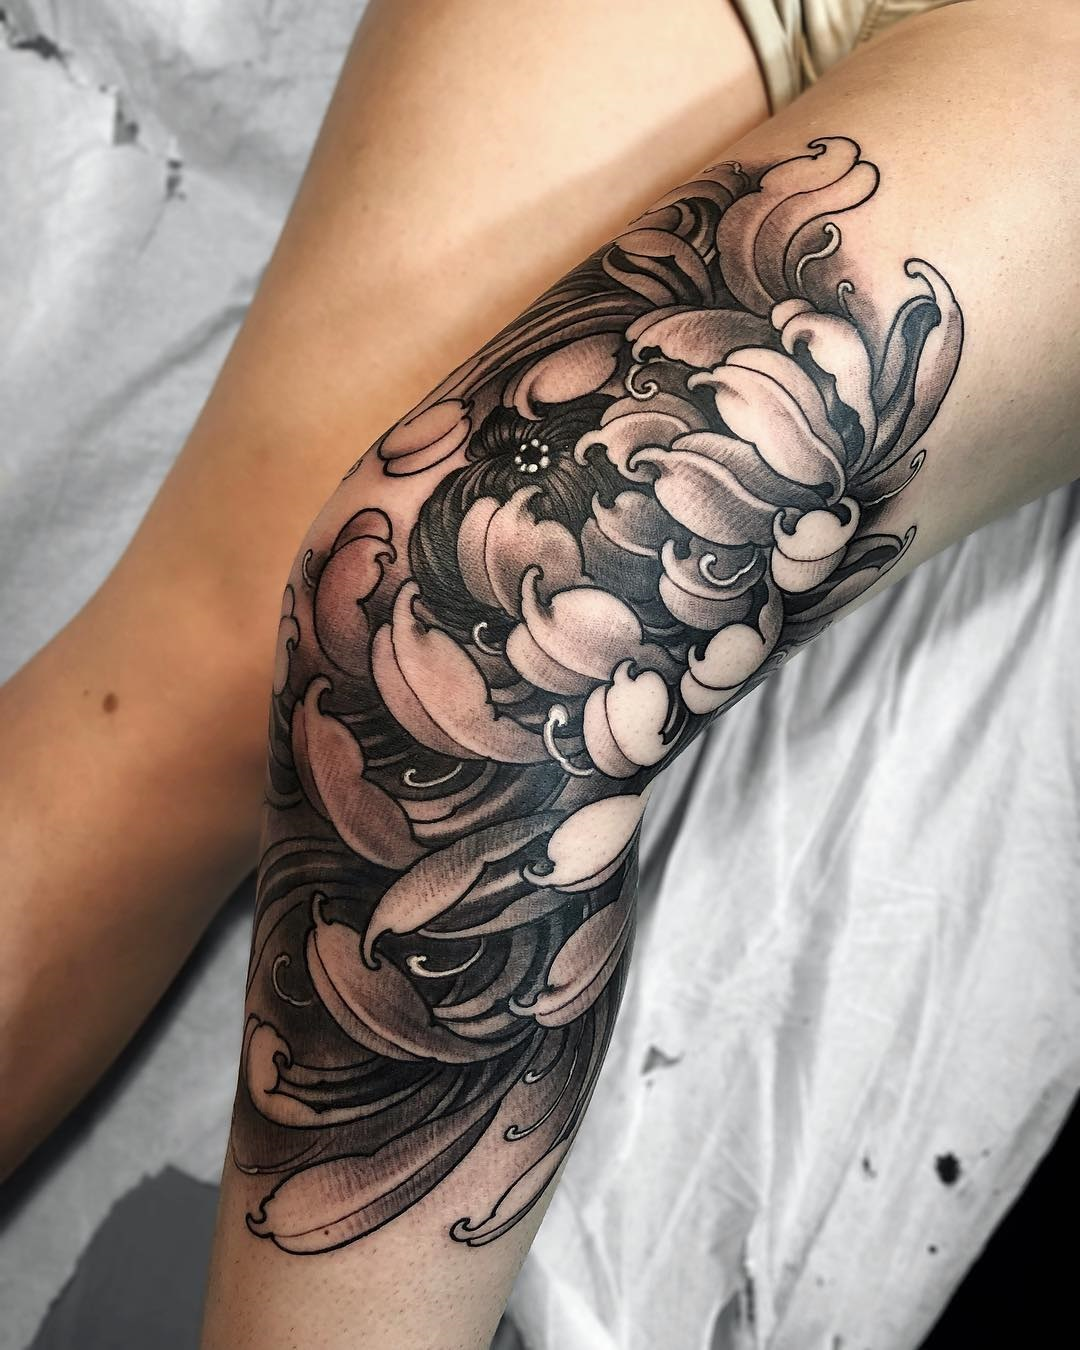 Chrysanthemum knee tattoo